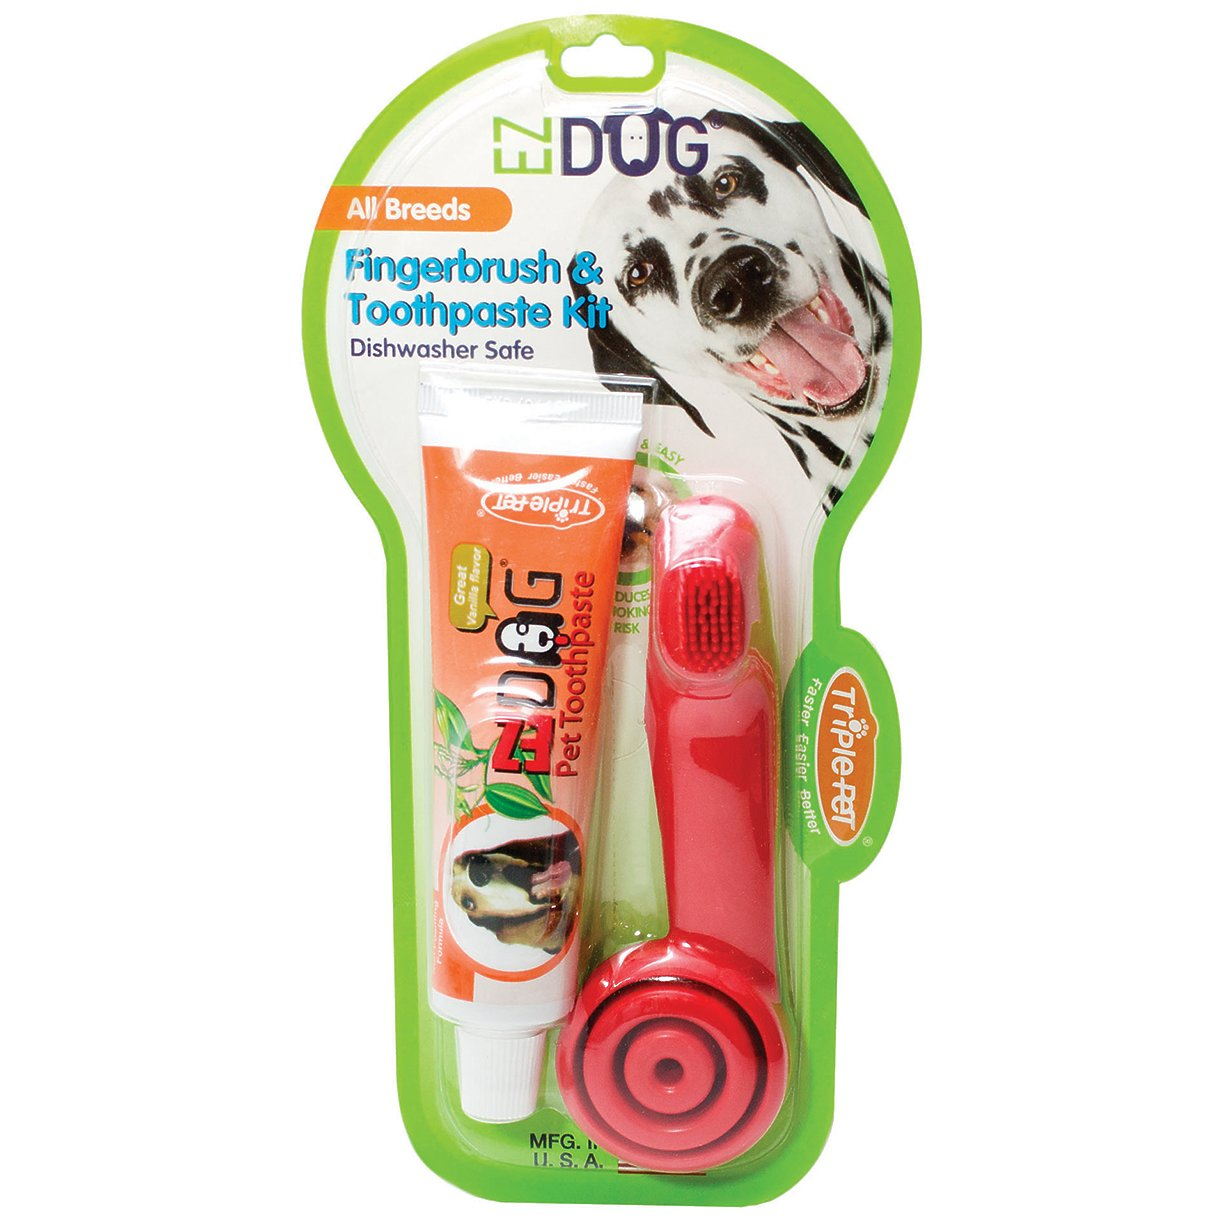 EZDOG Fingerbrush with Handle and Toothpaste Kit for Dogs